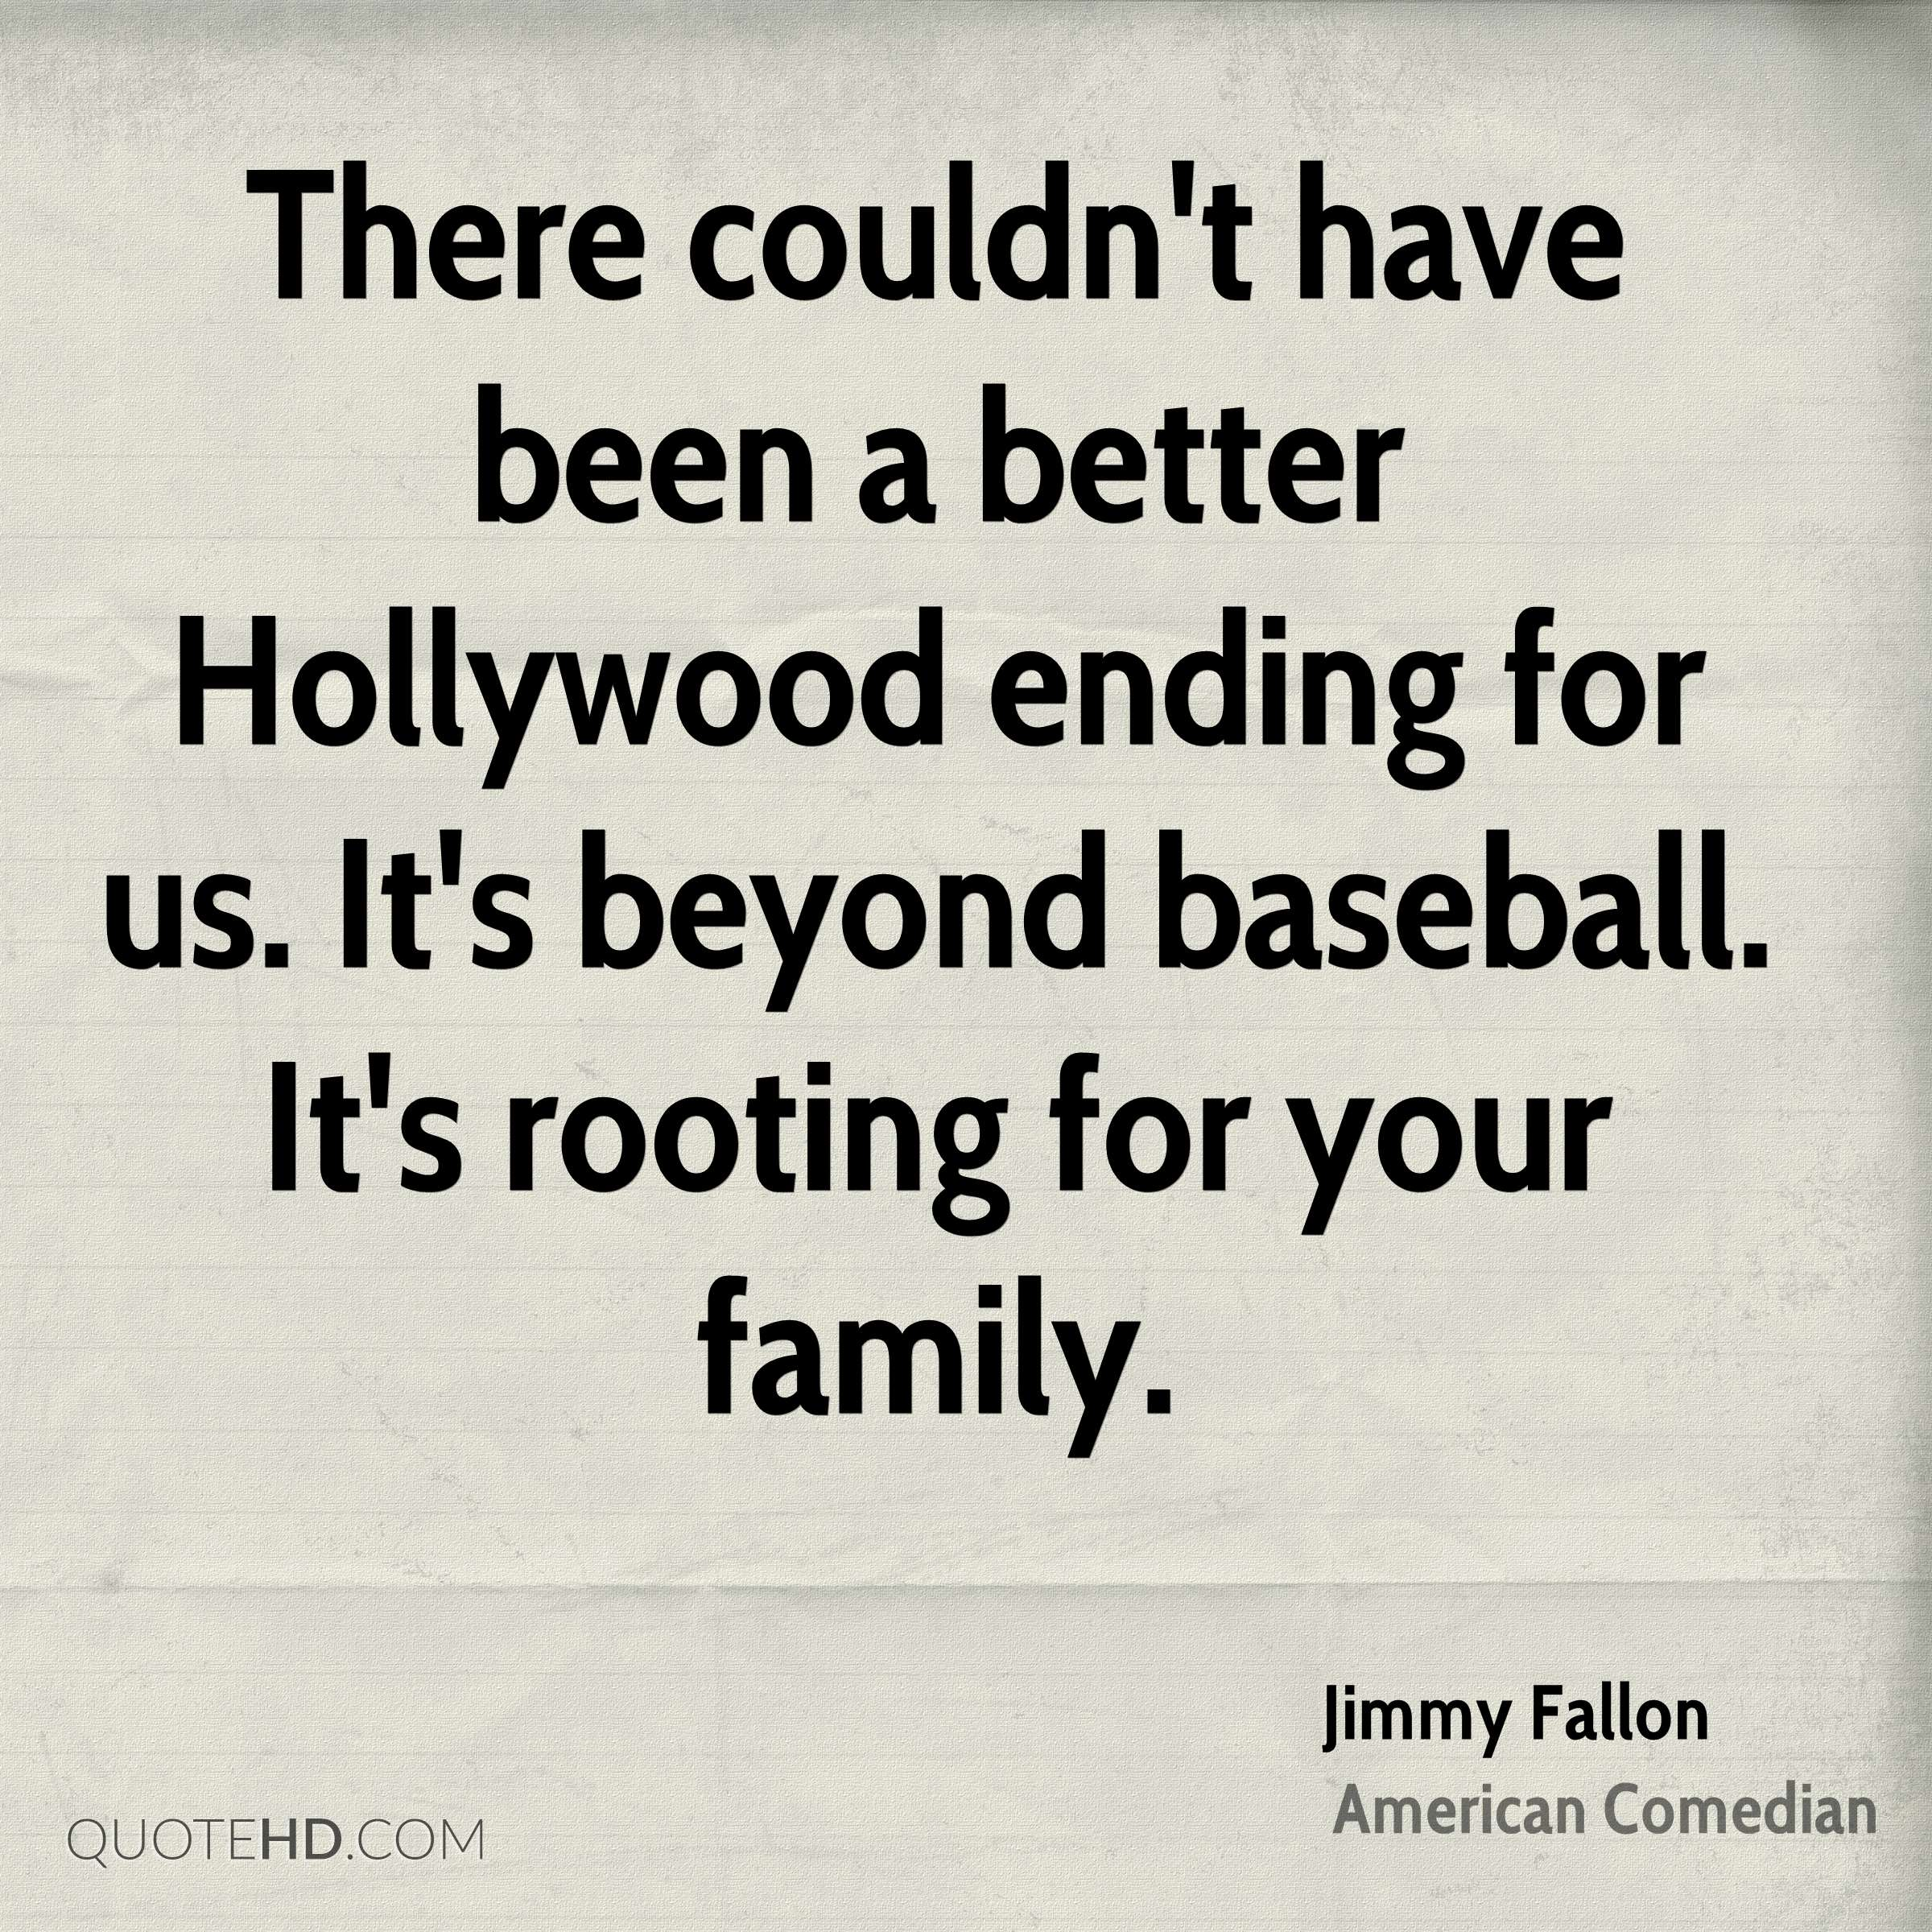 There couldn't have been a better Hollywood ending for us. It's beyond baseball. It's rooting for your family.